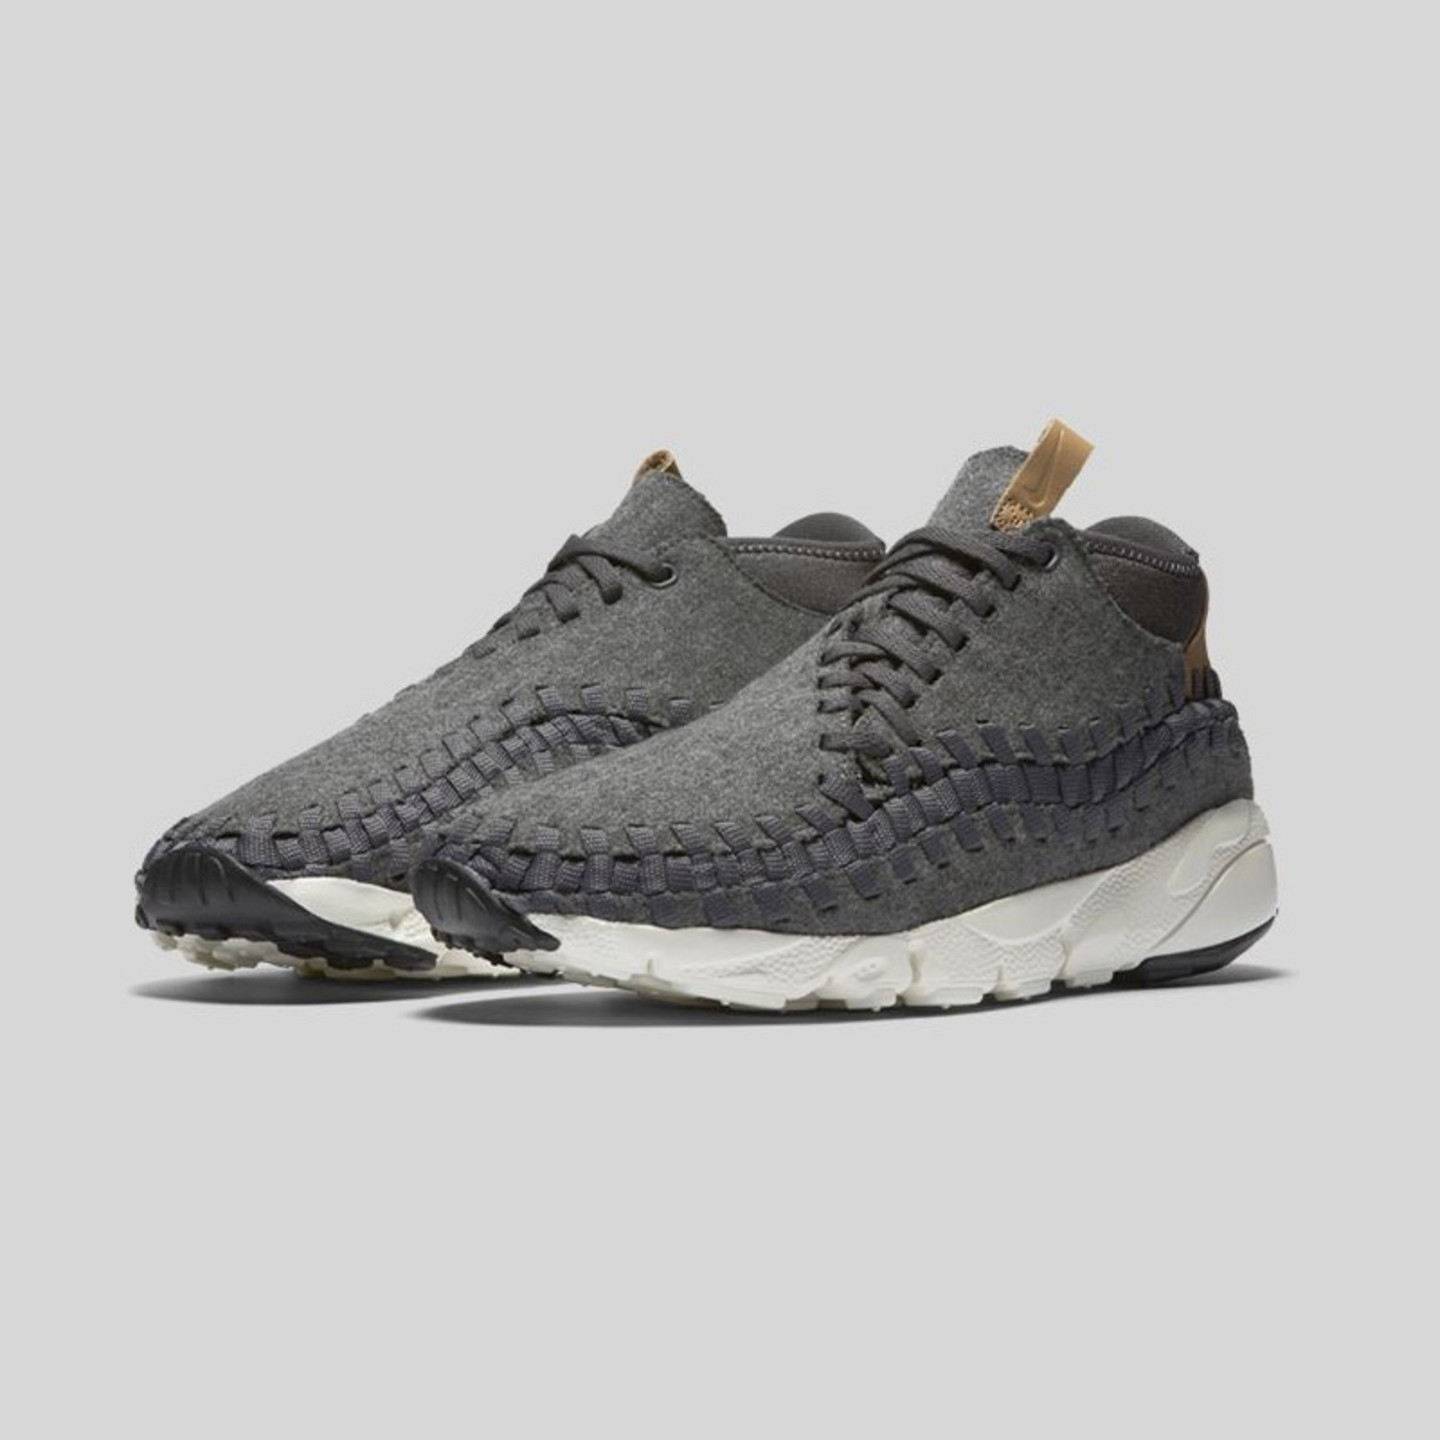 Nike Air Footscape Woven Chukka Dark Grey / Sail / Vachetta Tan 857874-002-45